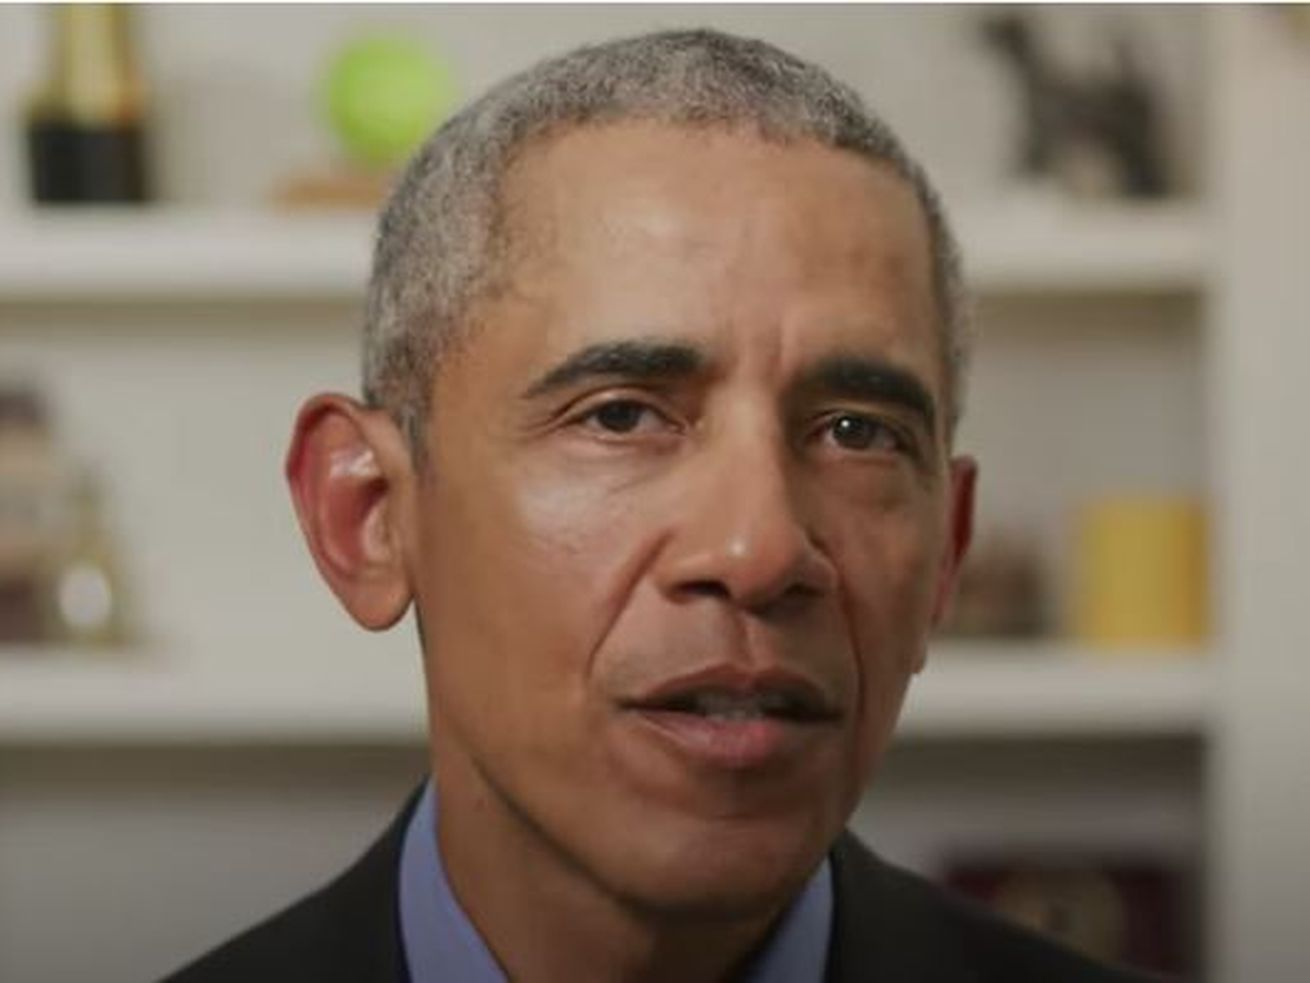 WATCH LIVE: President Obama addresses 'continued police violence' in virtual town hall